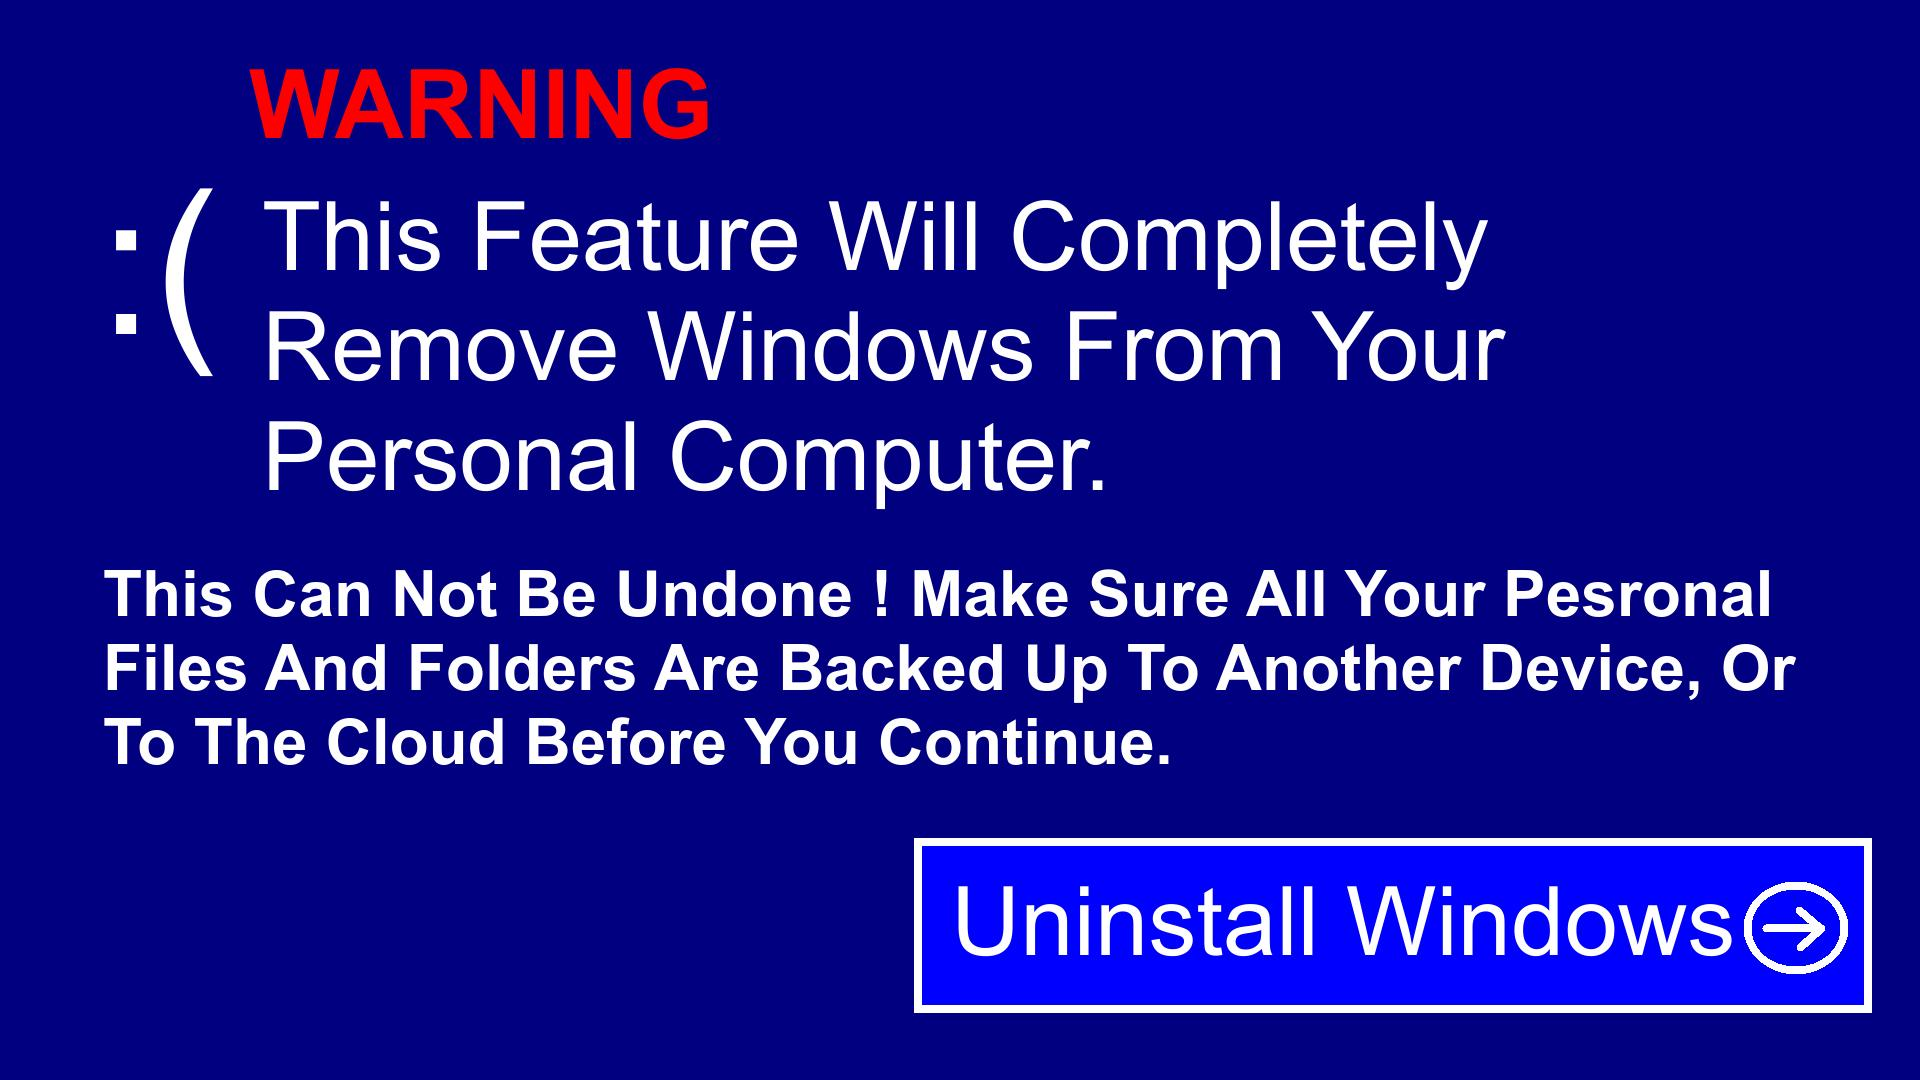 Uninstall Windows